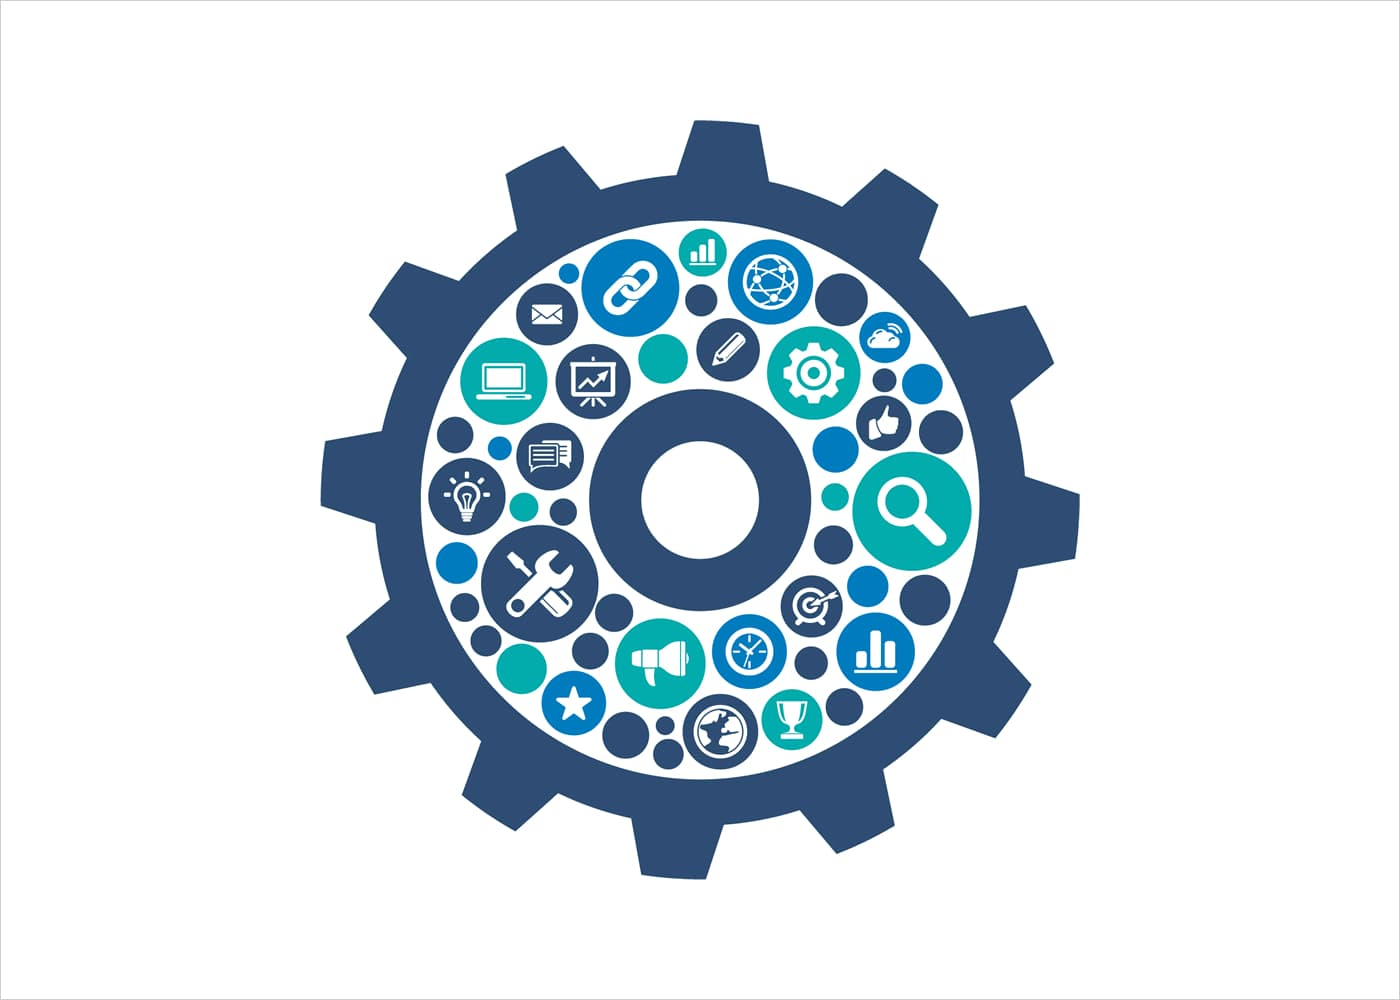 naem-webinar-2017-thriving-in-the-circular-economy-product-design-and-business-practices-for-circular-tech-and-other-industries-700x500